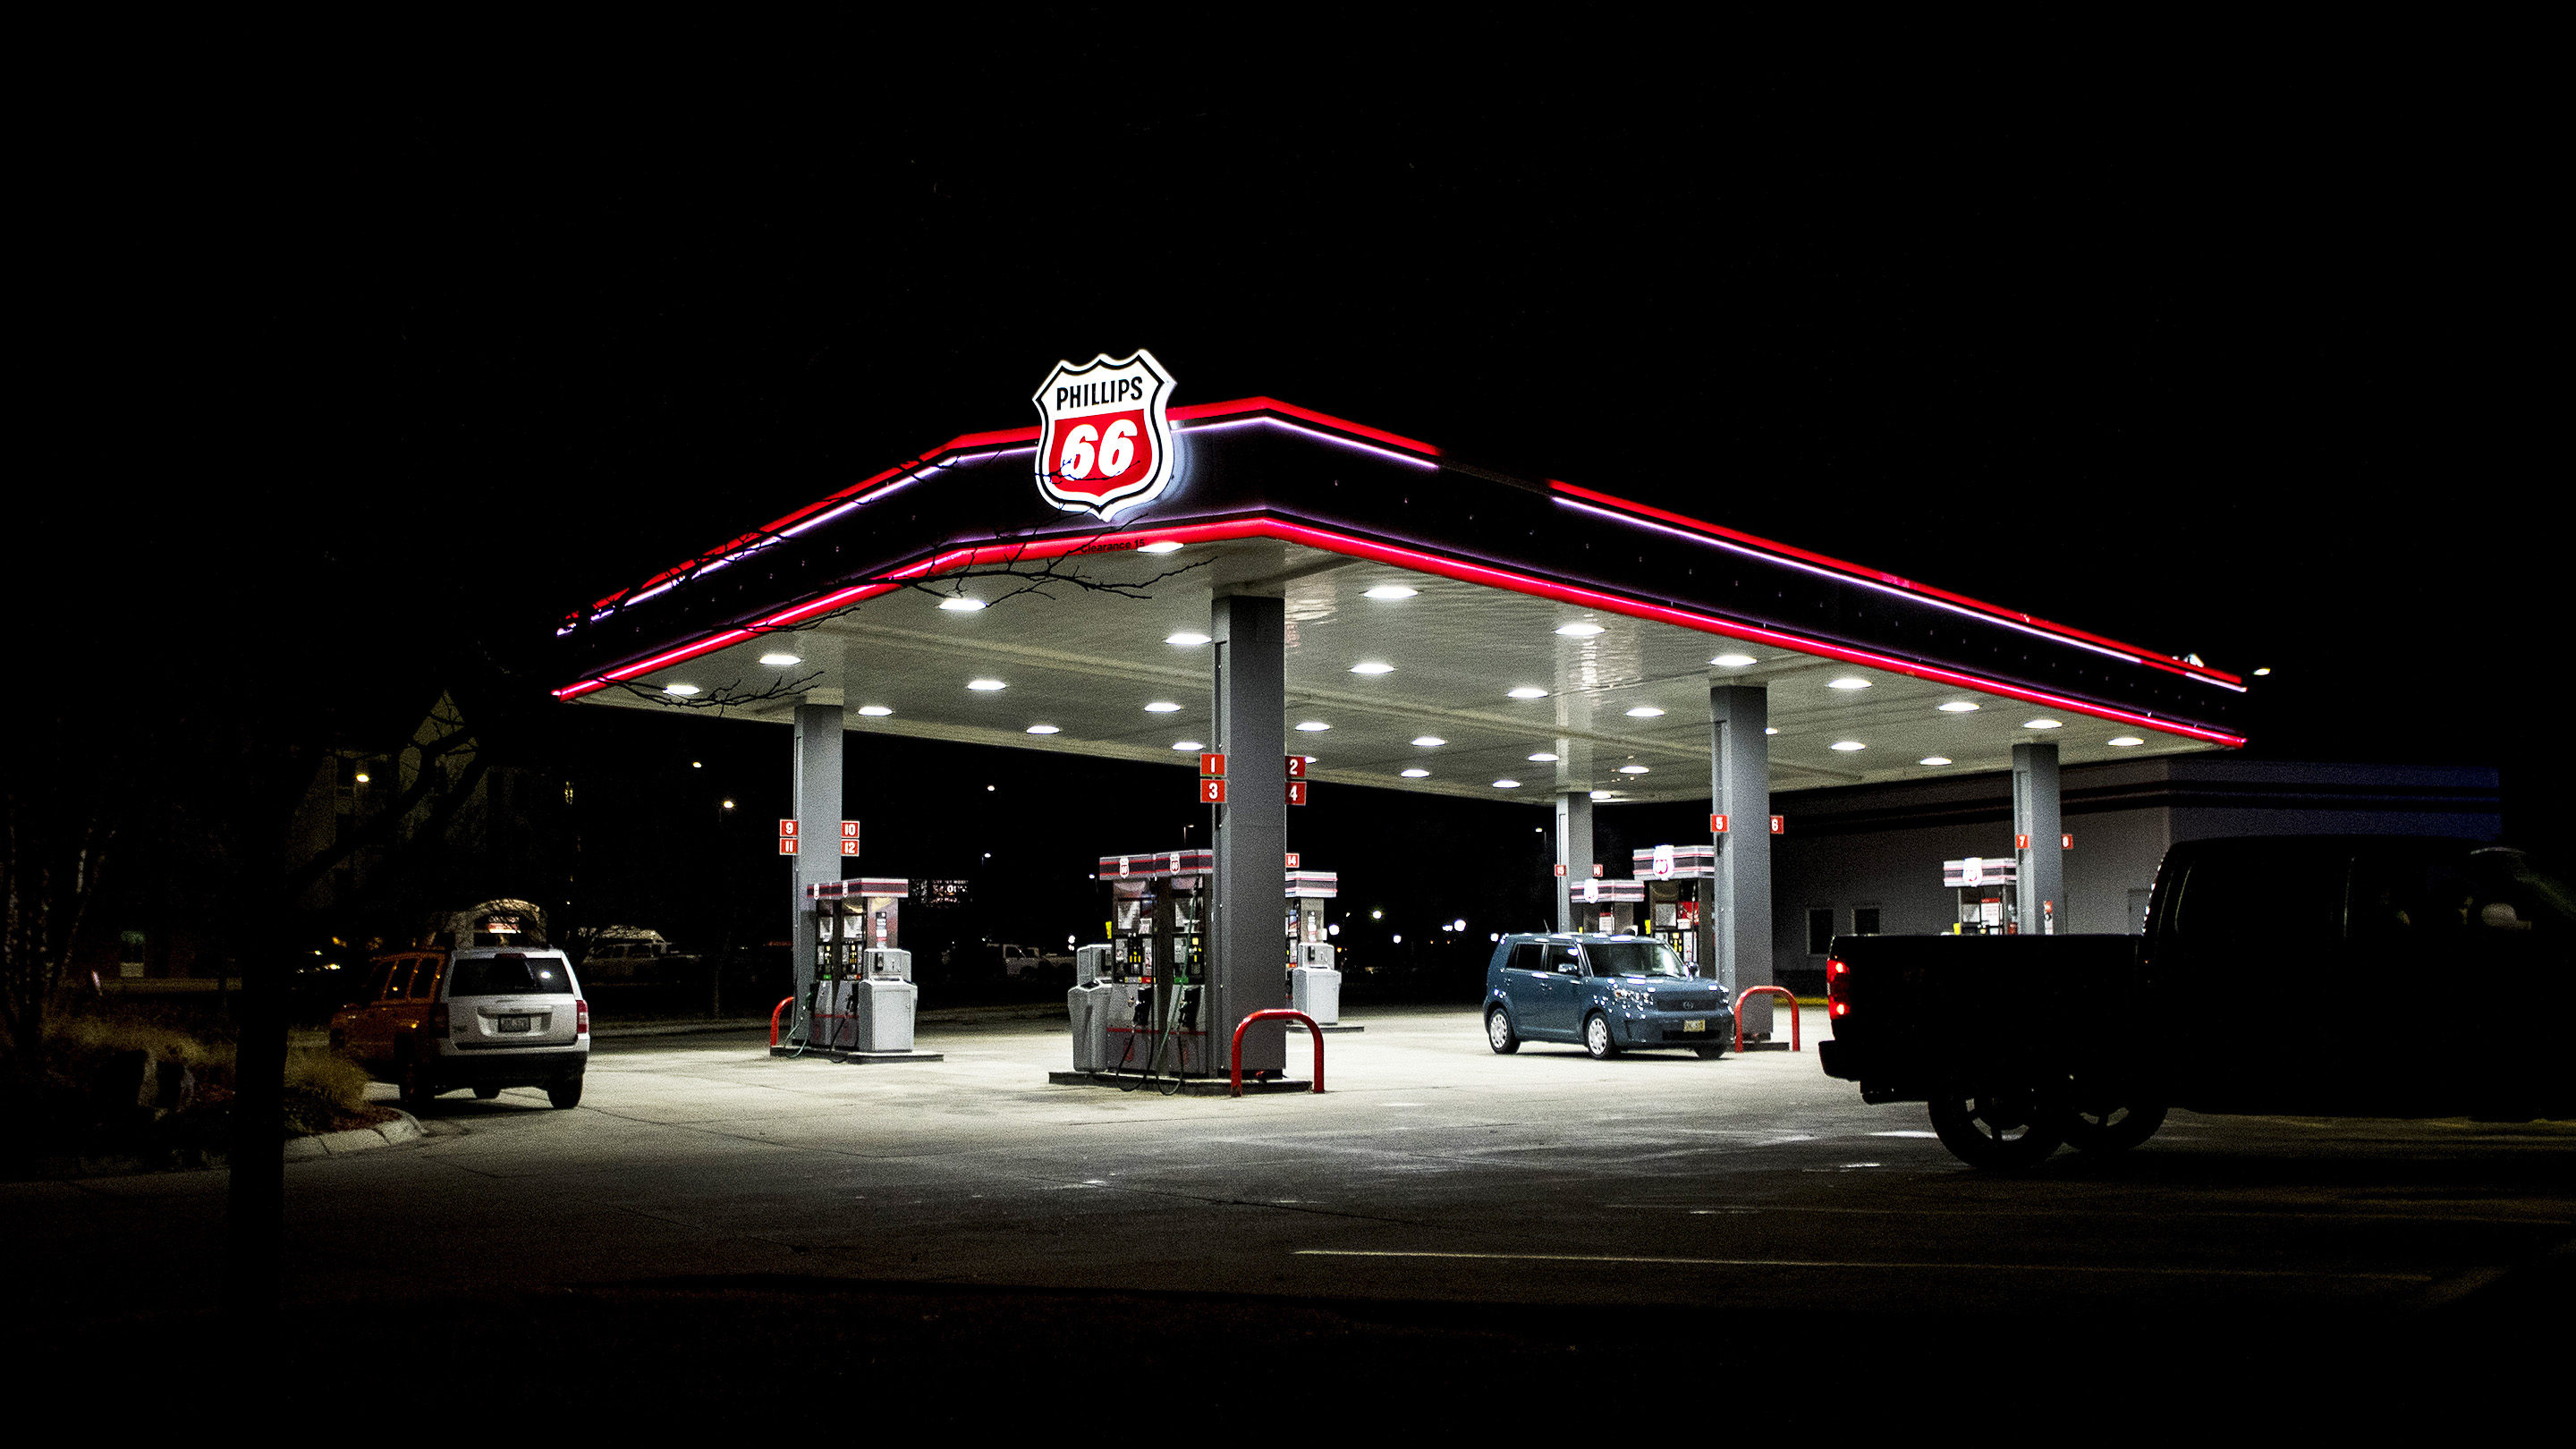 A Phillips 66 Gas Station Ahead Of Earnings Figures